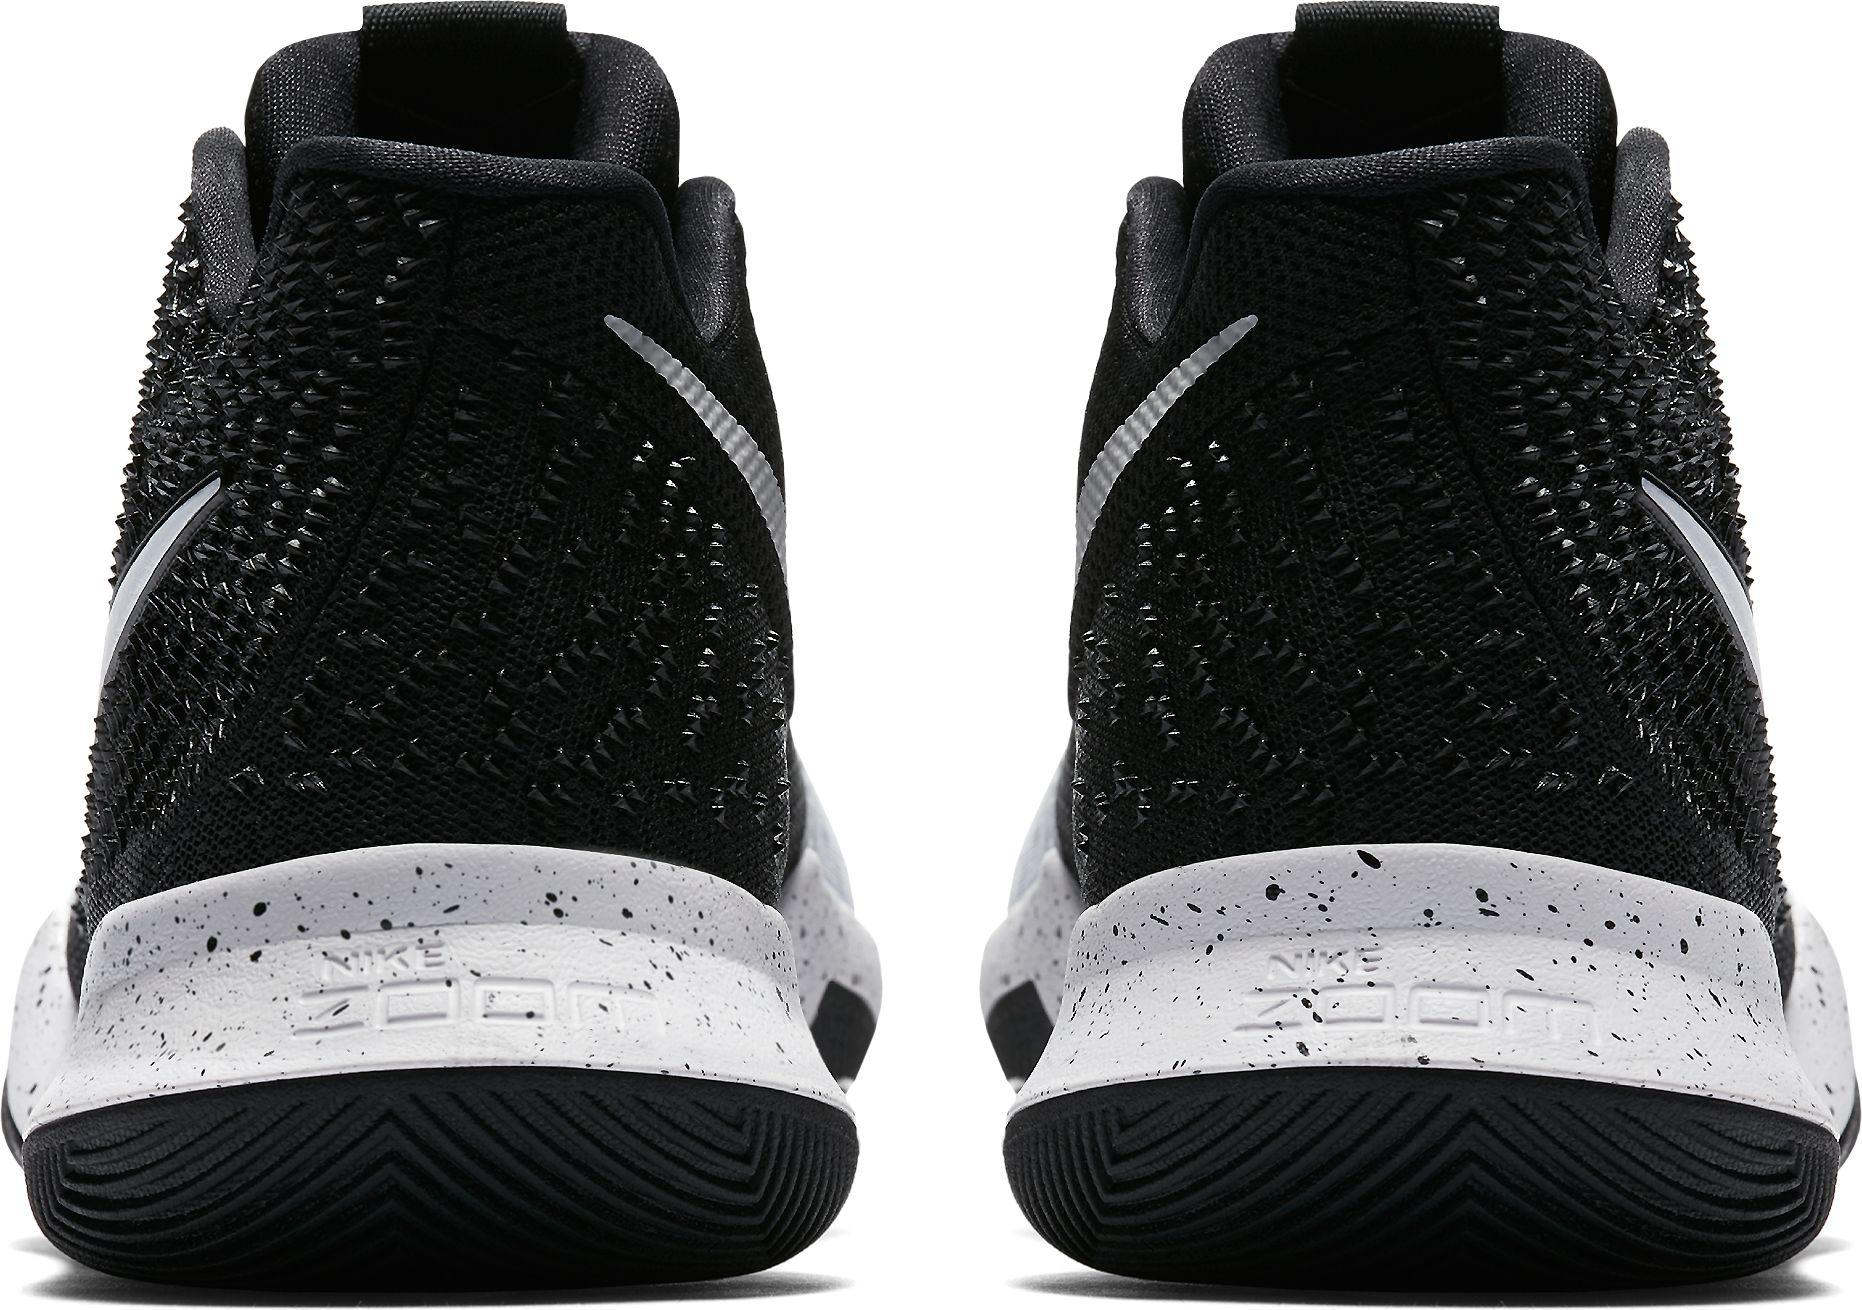 finest selection 3b7ed 32594 Nike Black Kyrie 3 Tb Basketball Shoes for men